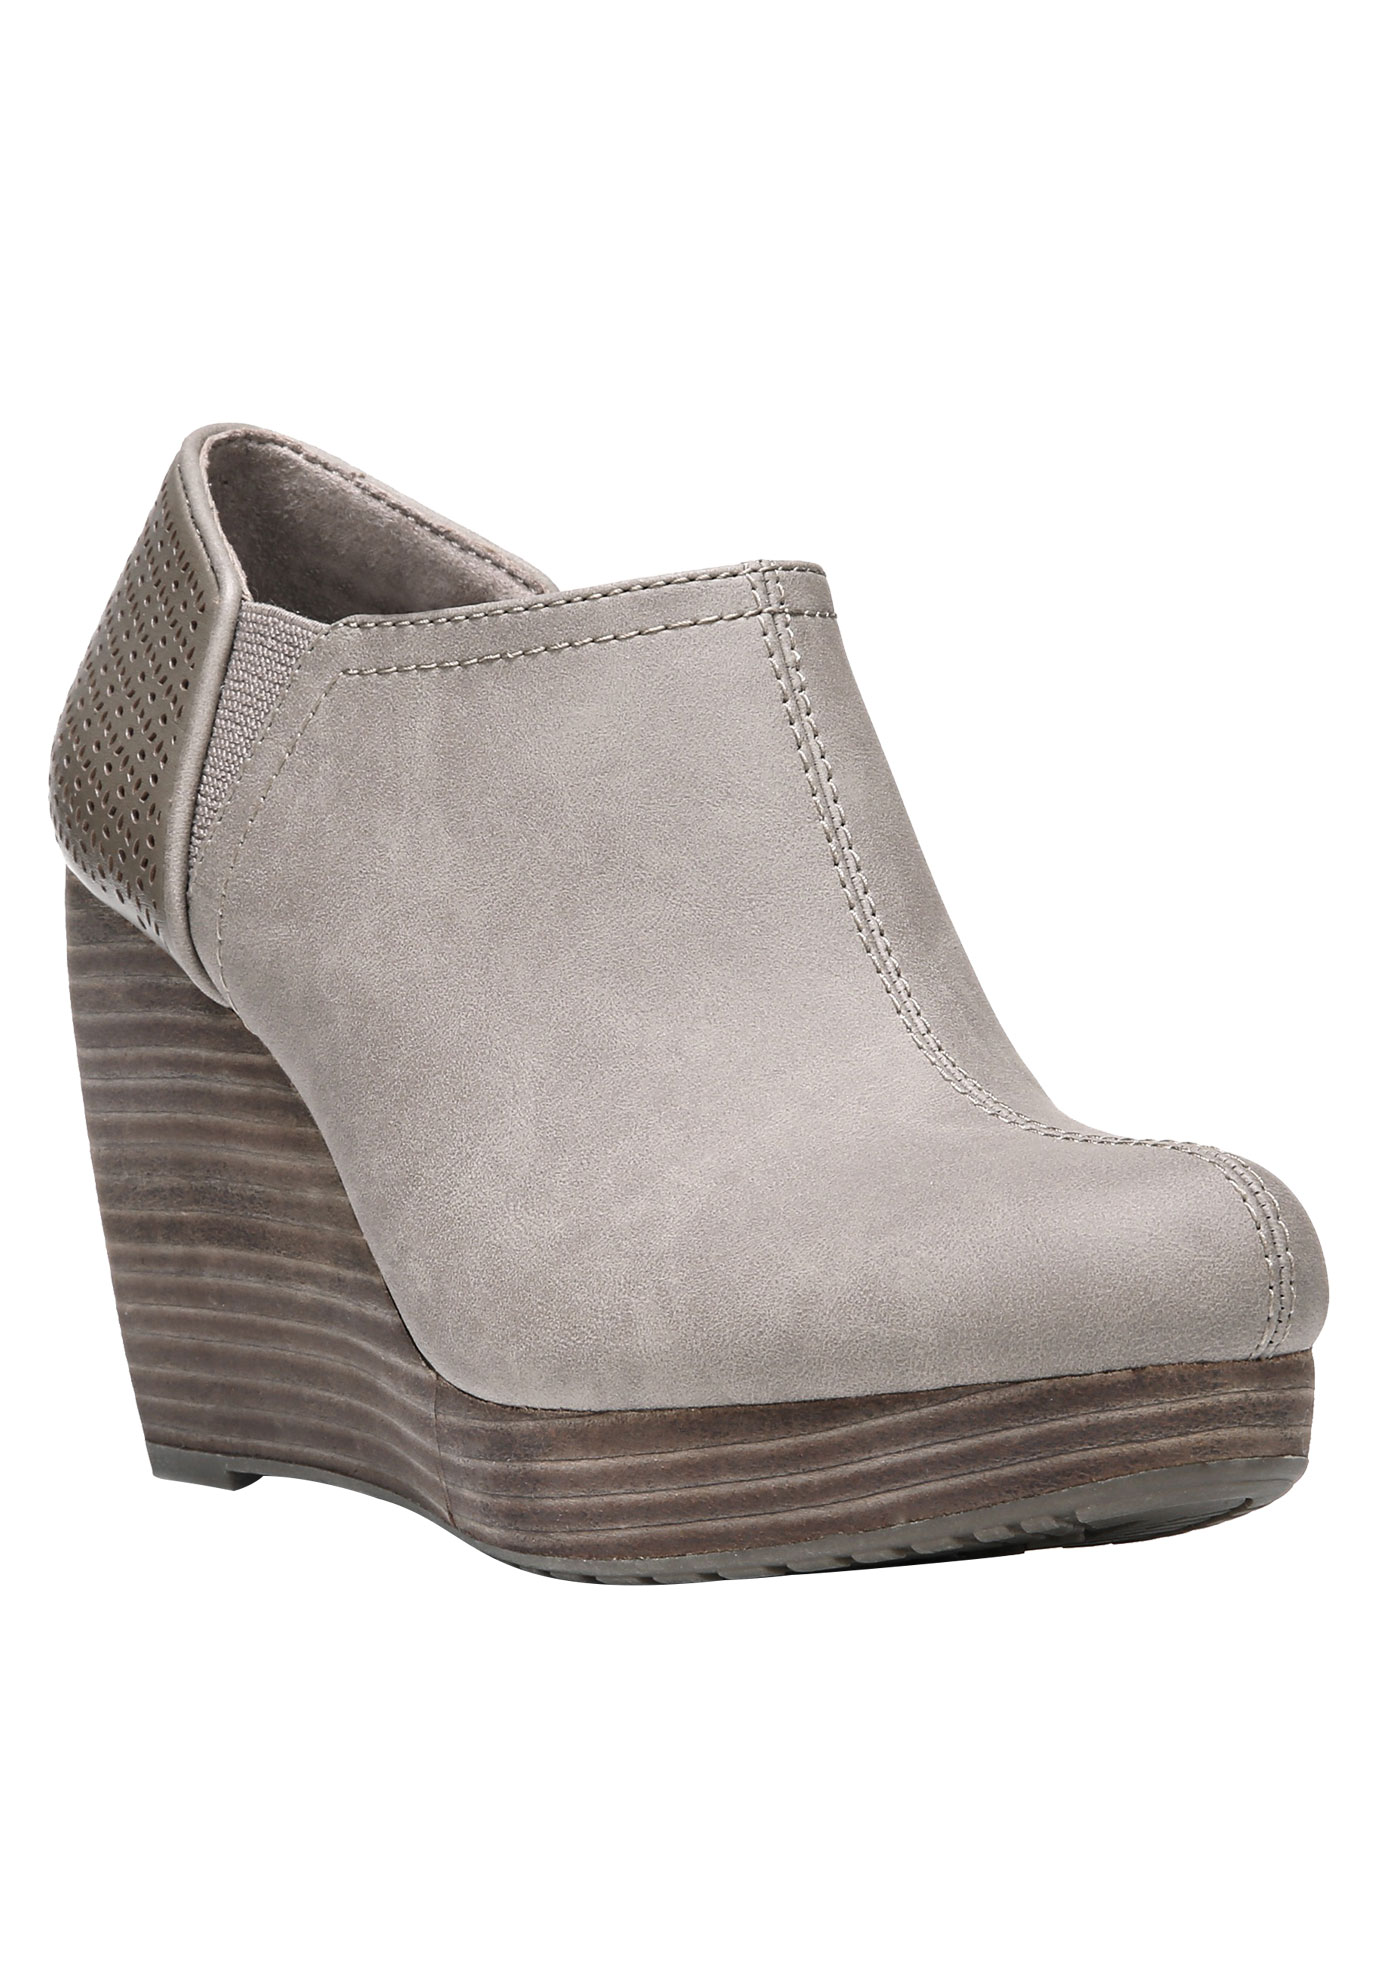 Harlow Booties by Dr. Scholl's®,